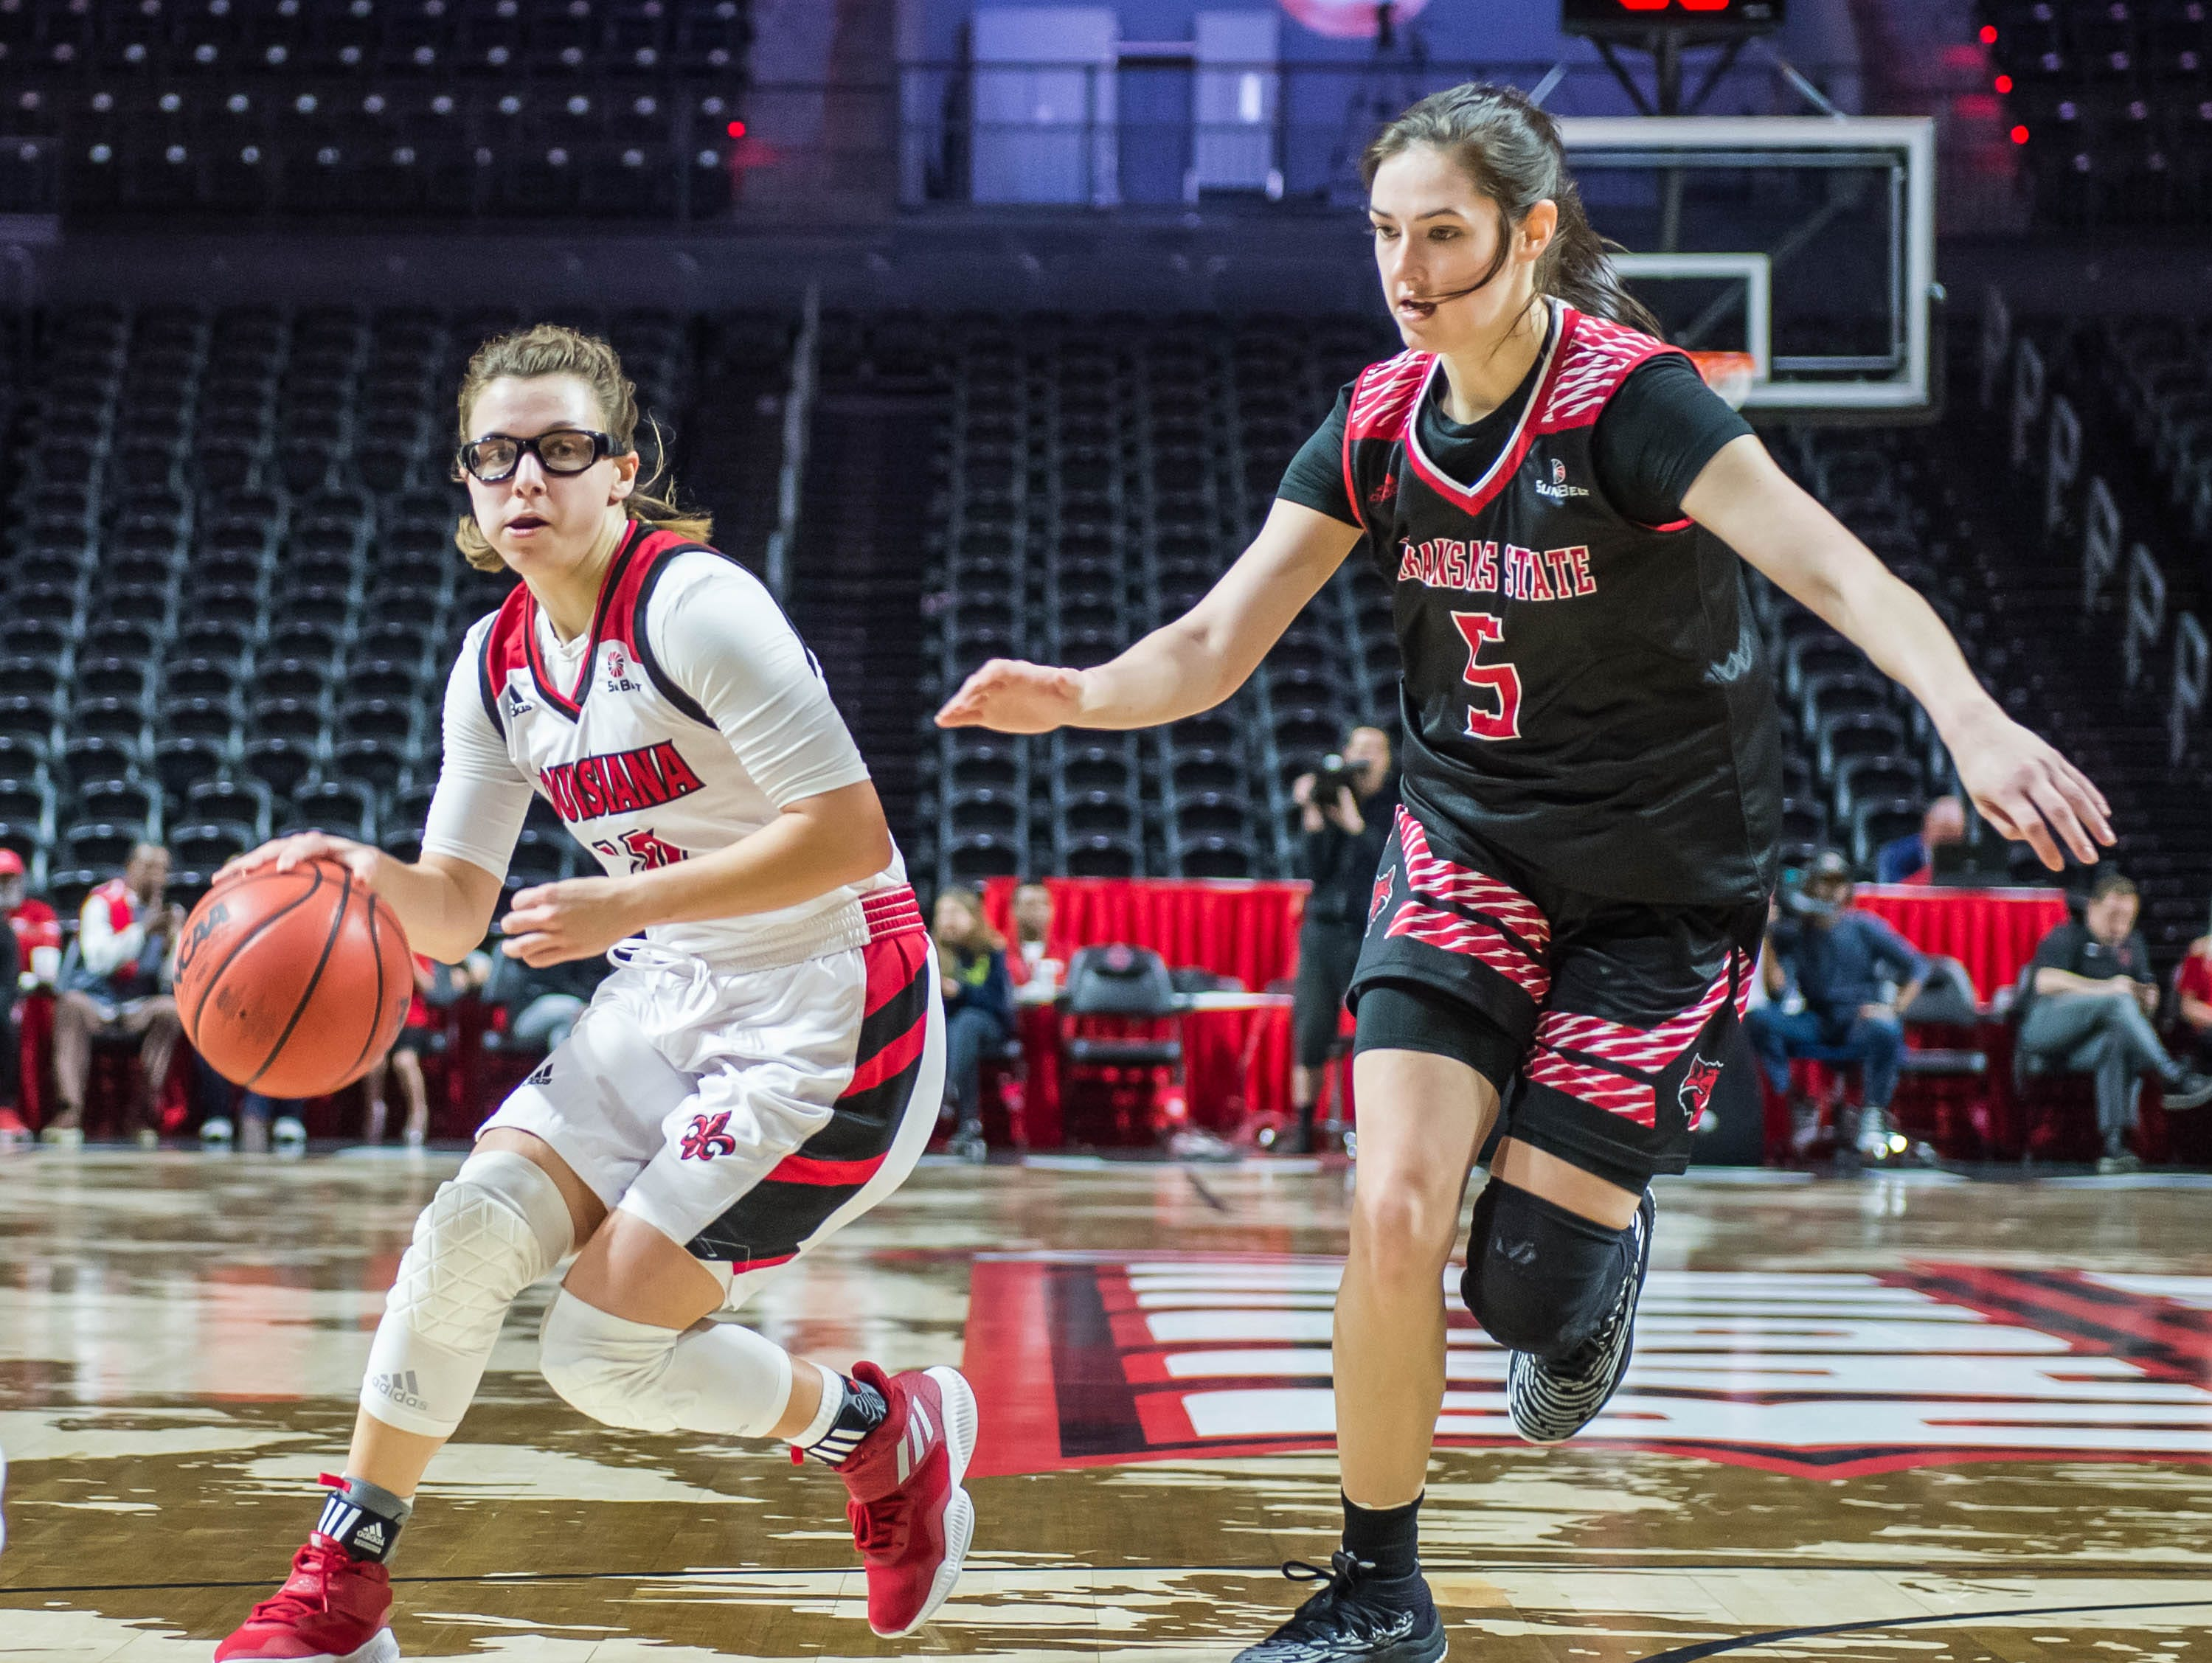 Cajuns Andrea Cournoyer (10) drives the ball pass Red Wolves Payton Tennison (5) as the Cajuns women's basketball team plays the Arkansas State Red Wolves at the Cajundome on Saturday, March 9, 2019.